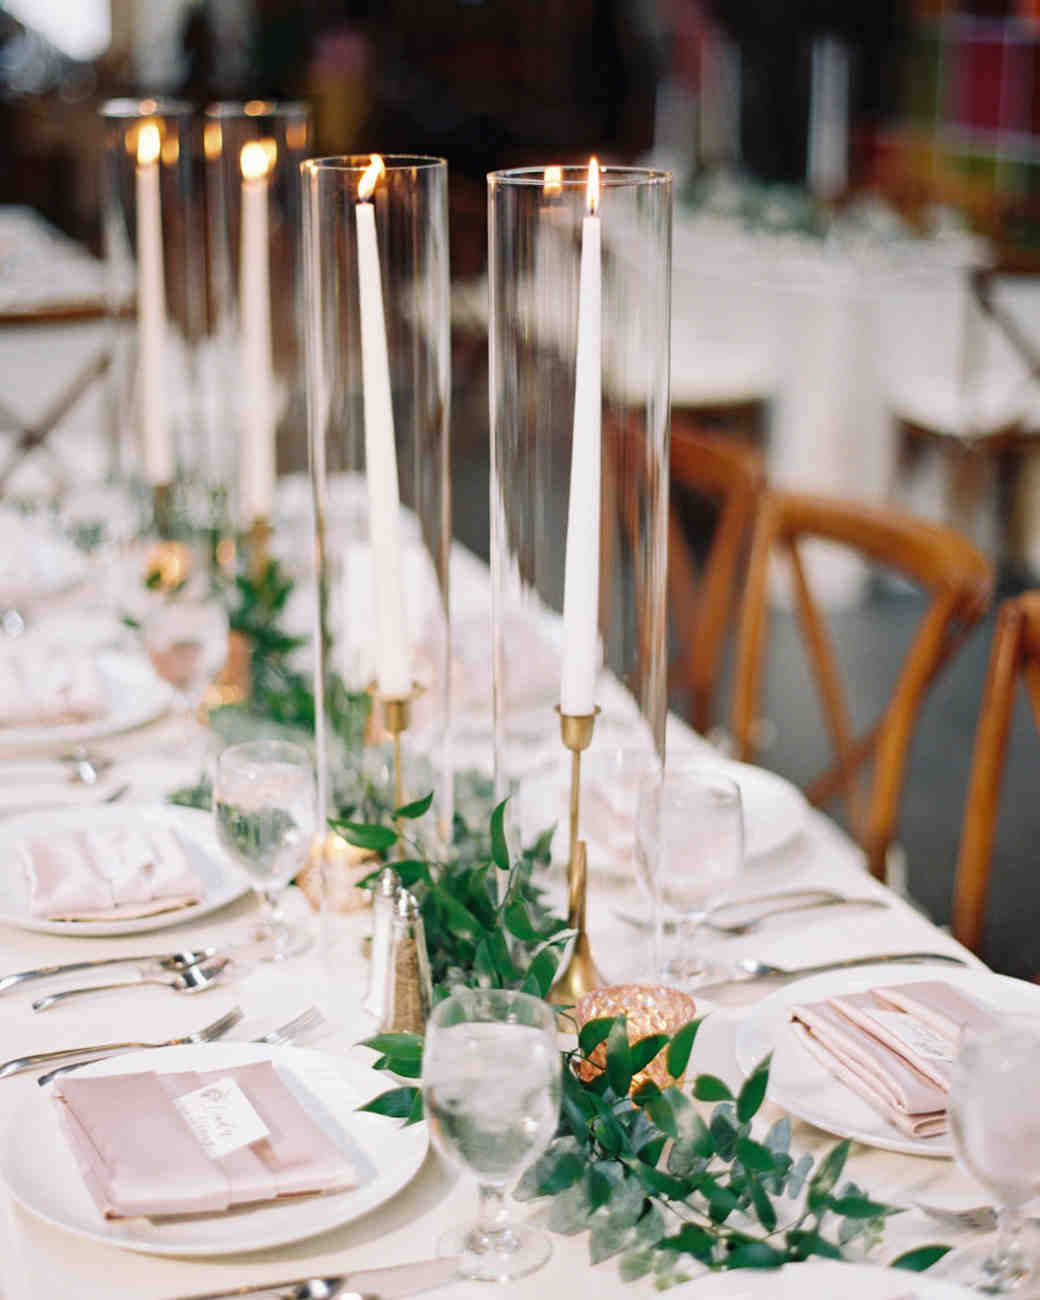 Wedding Centerpieces With Candles: 23 Candle Centerpieces That Will Light Up Your Reception